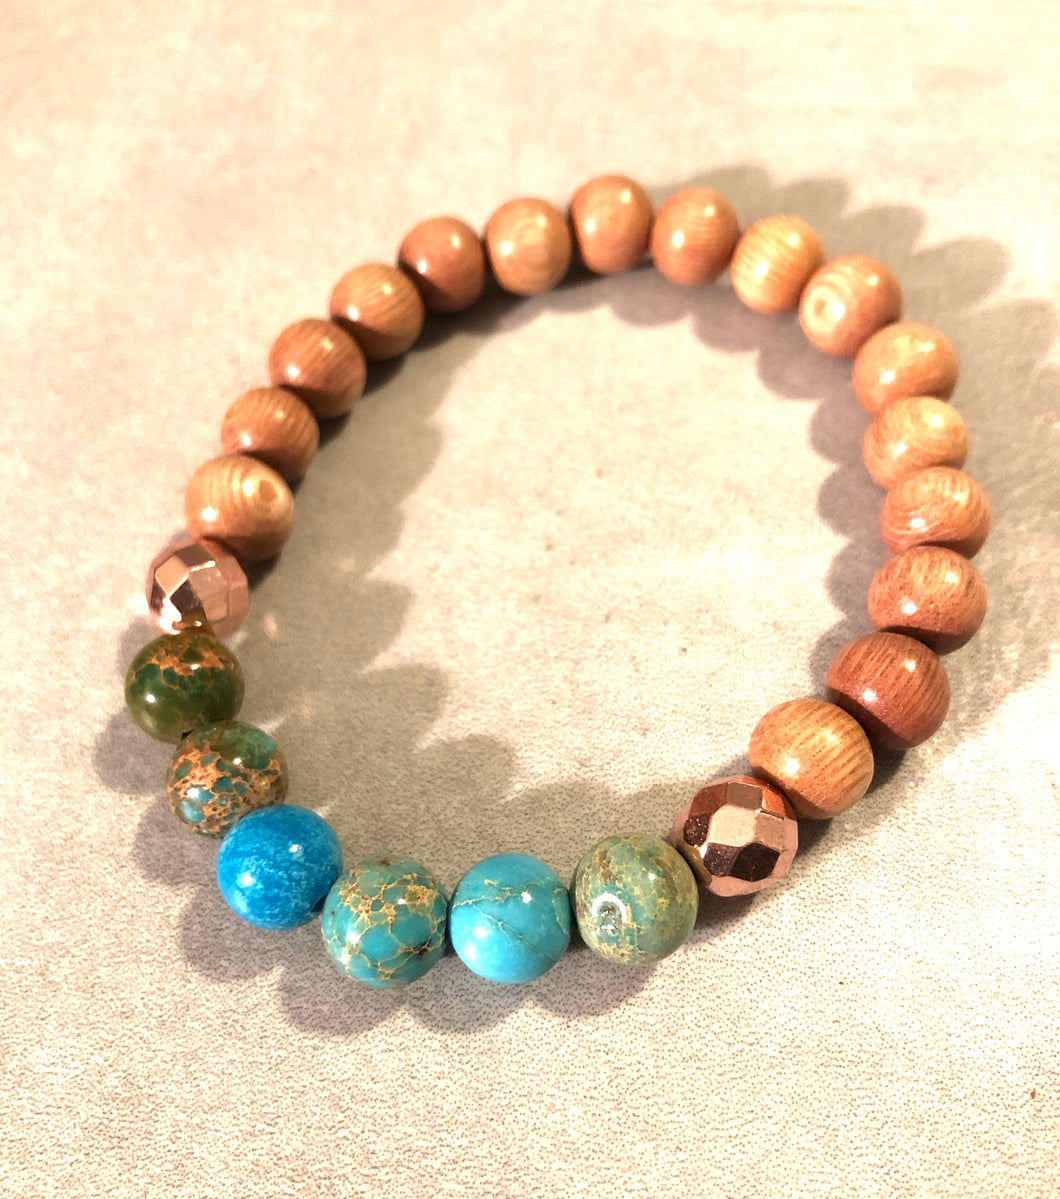 8mm Blue Imperial Jasper and Rosewood Diffuser Bracelet